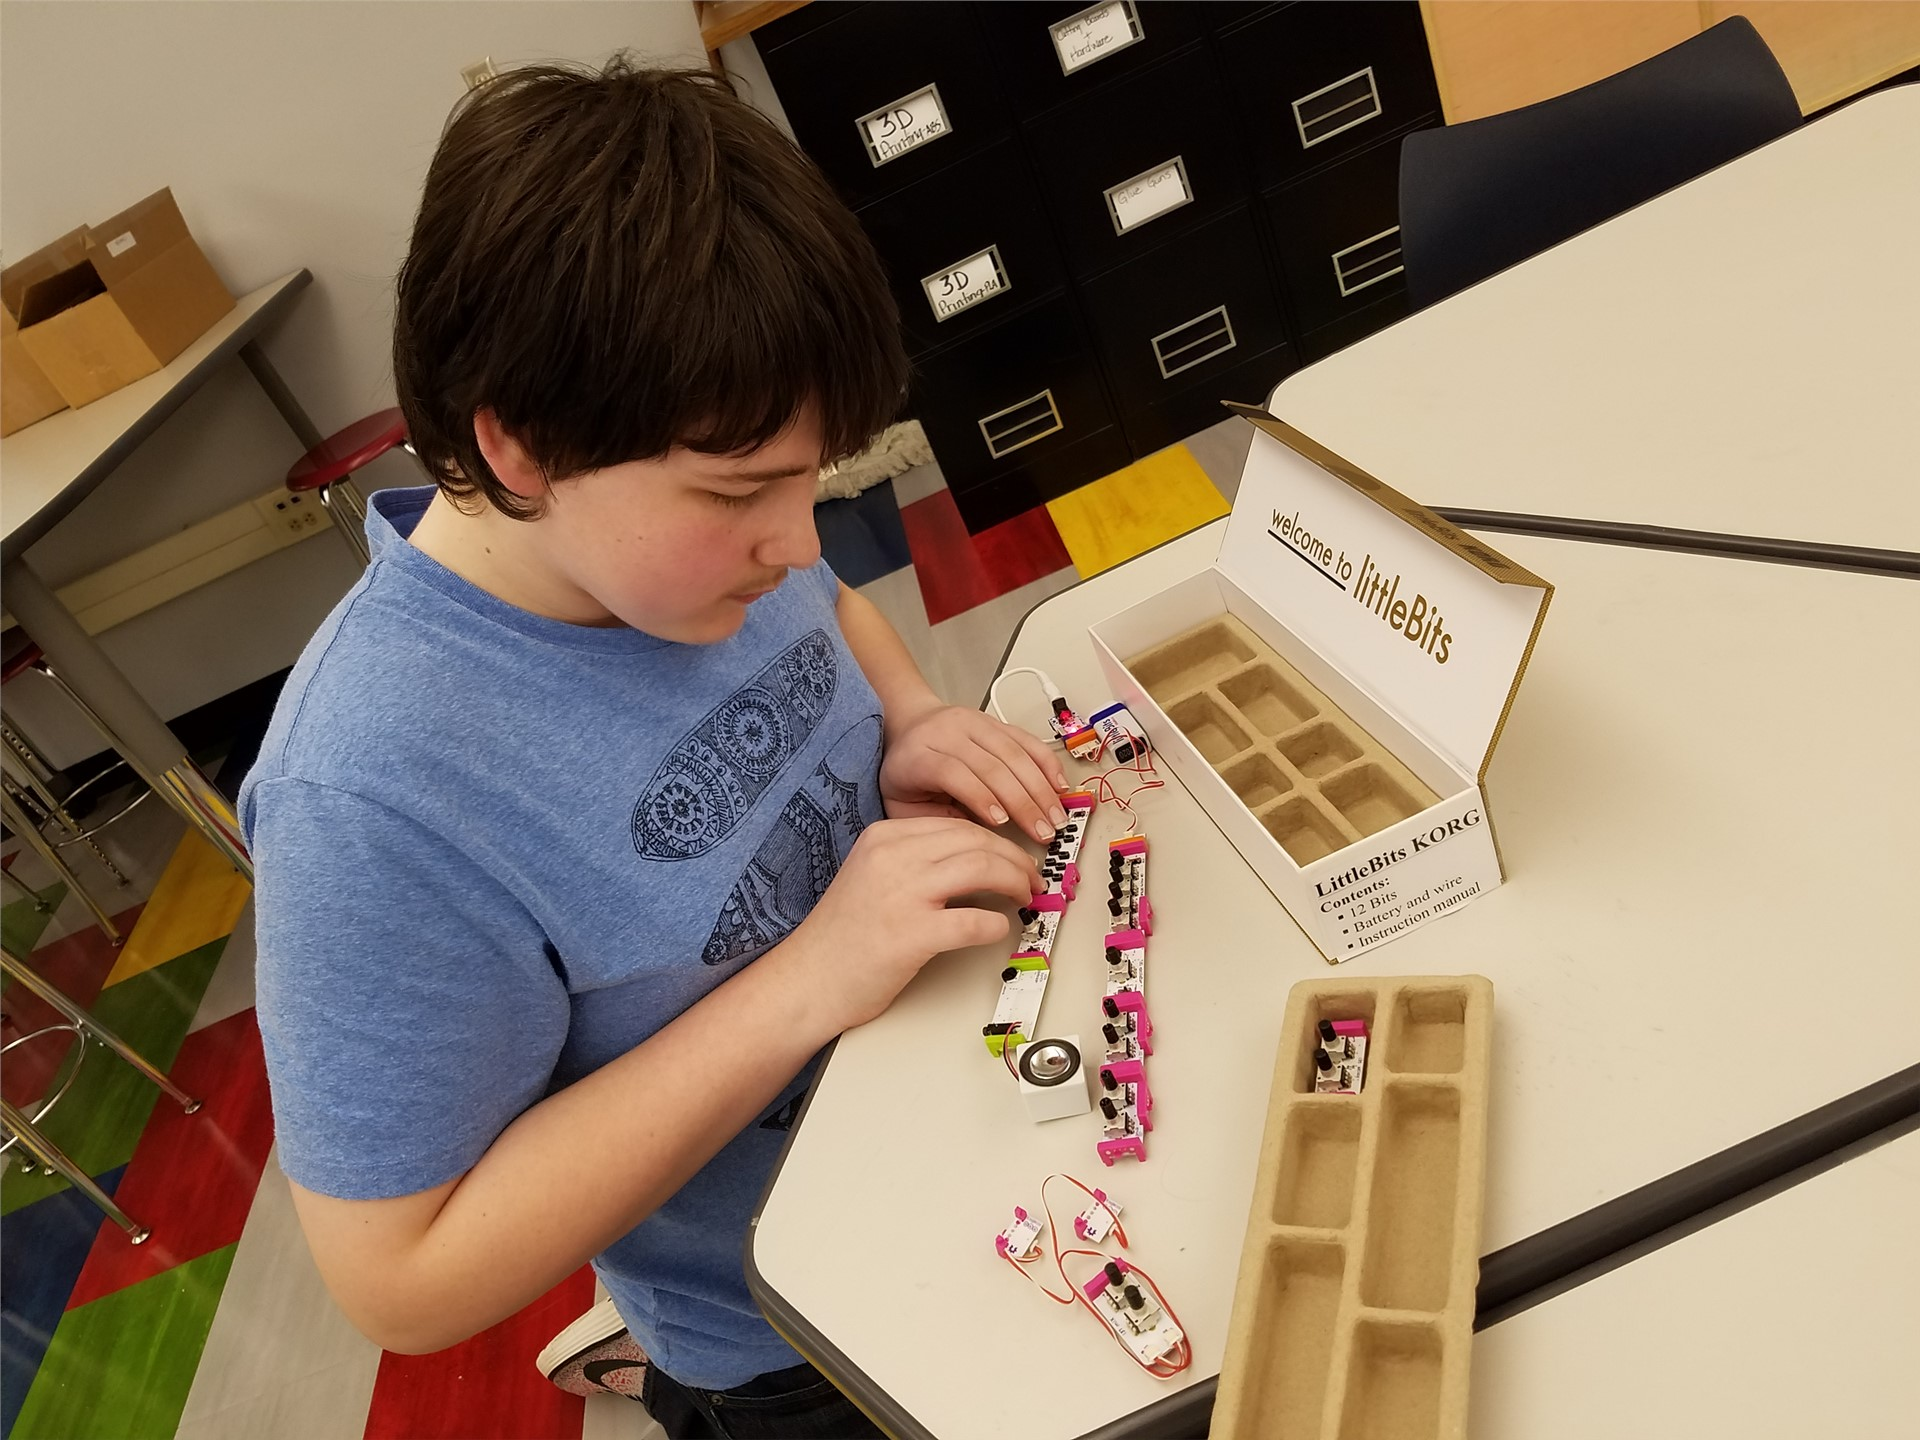 creating music with LittleBits KORG Synth Kit